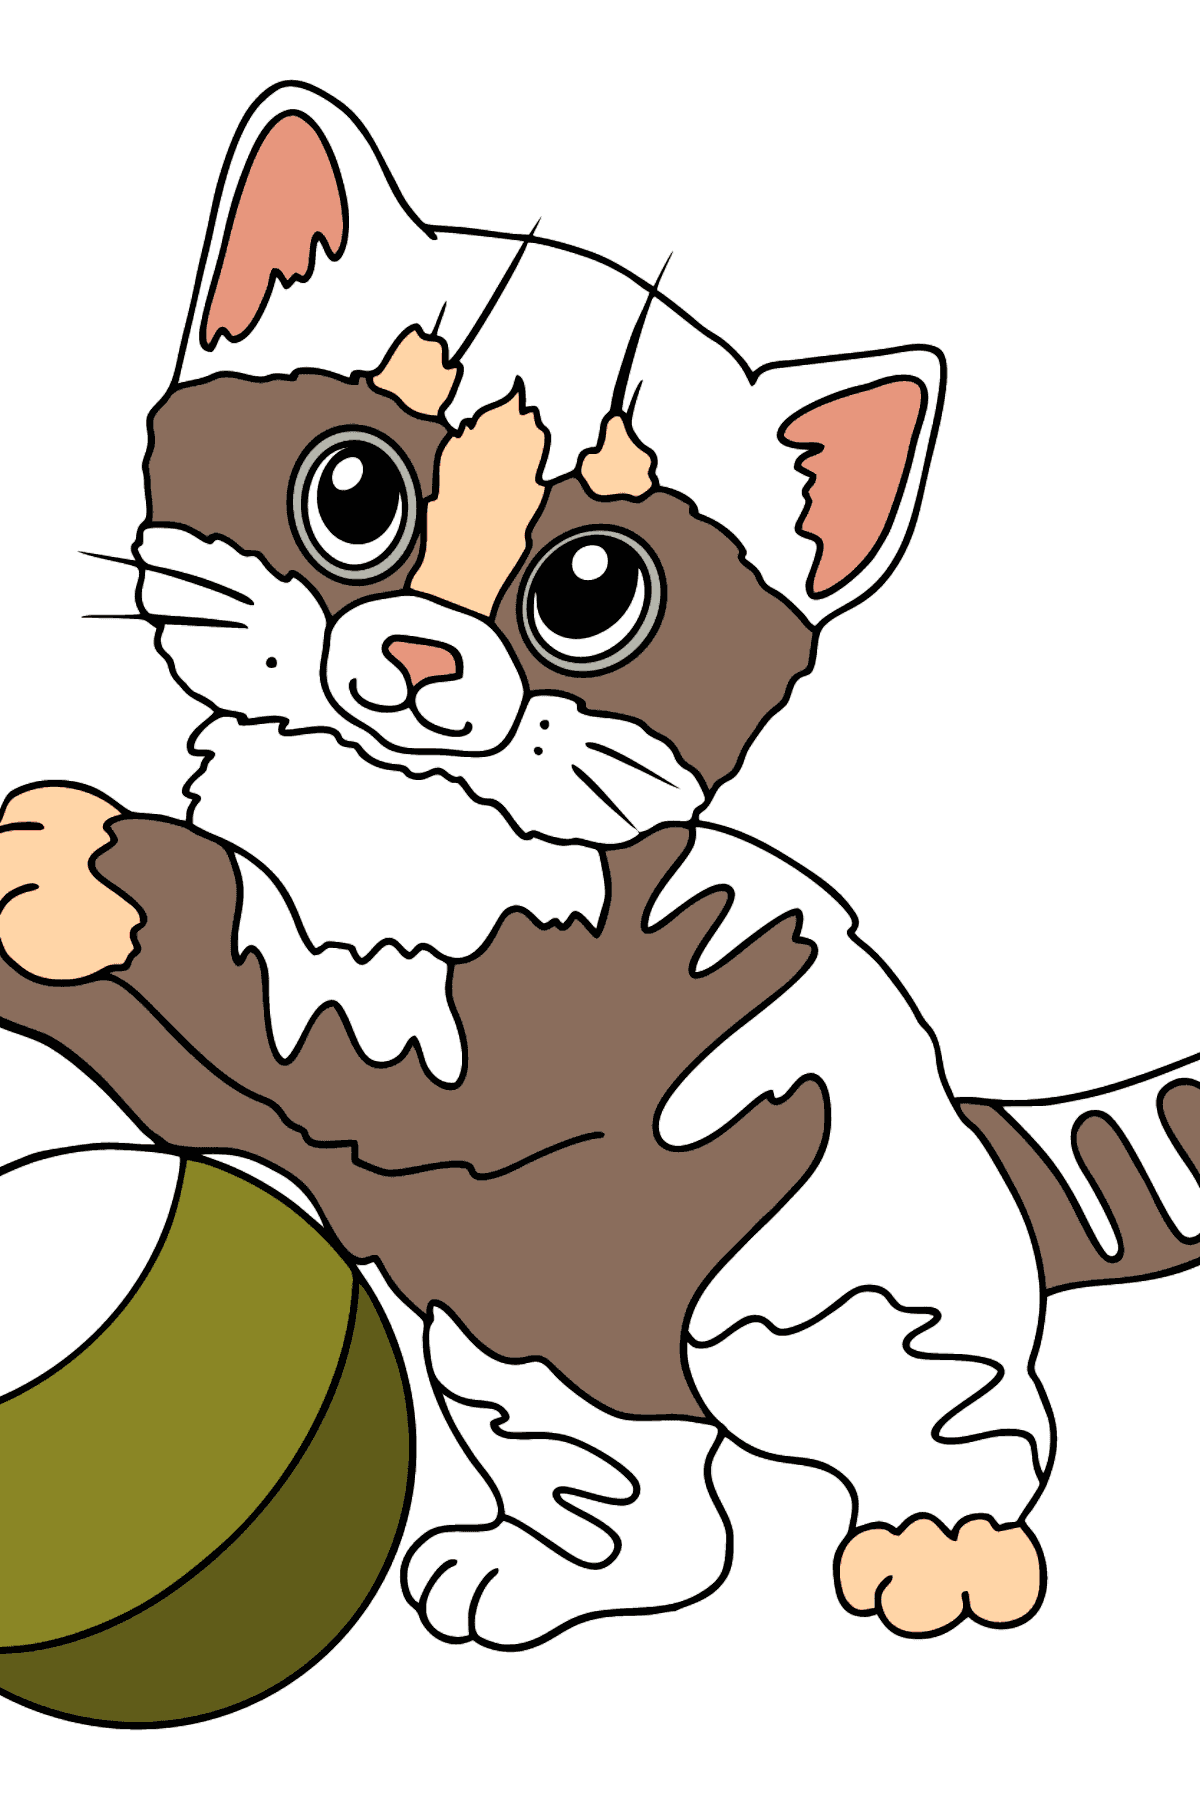 Coloring Page - A Cat with a Green Ball - Coloring Pages for Kids